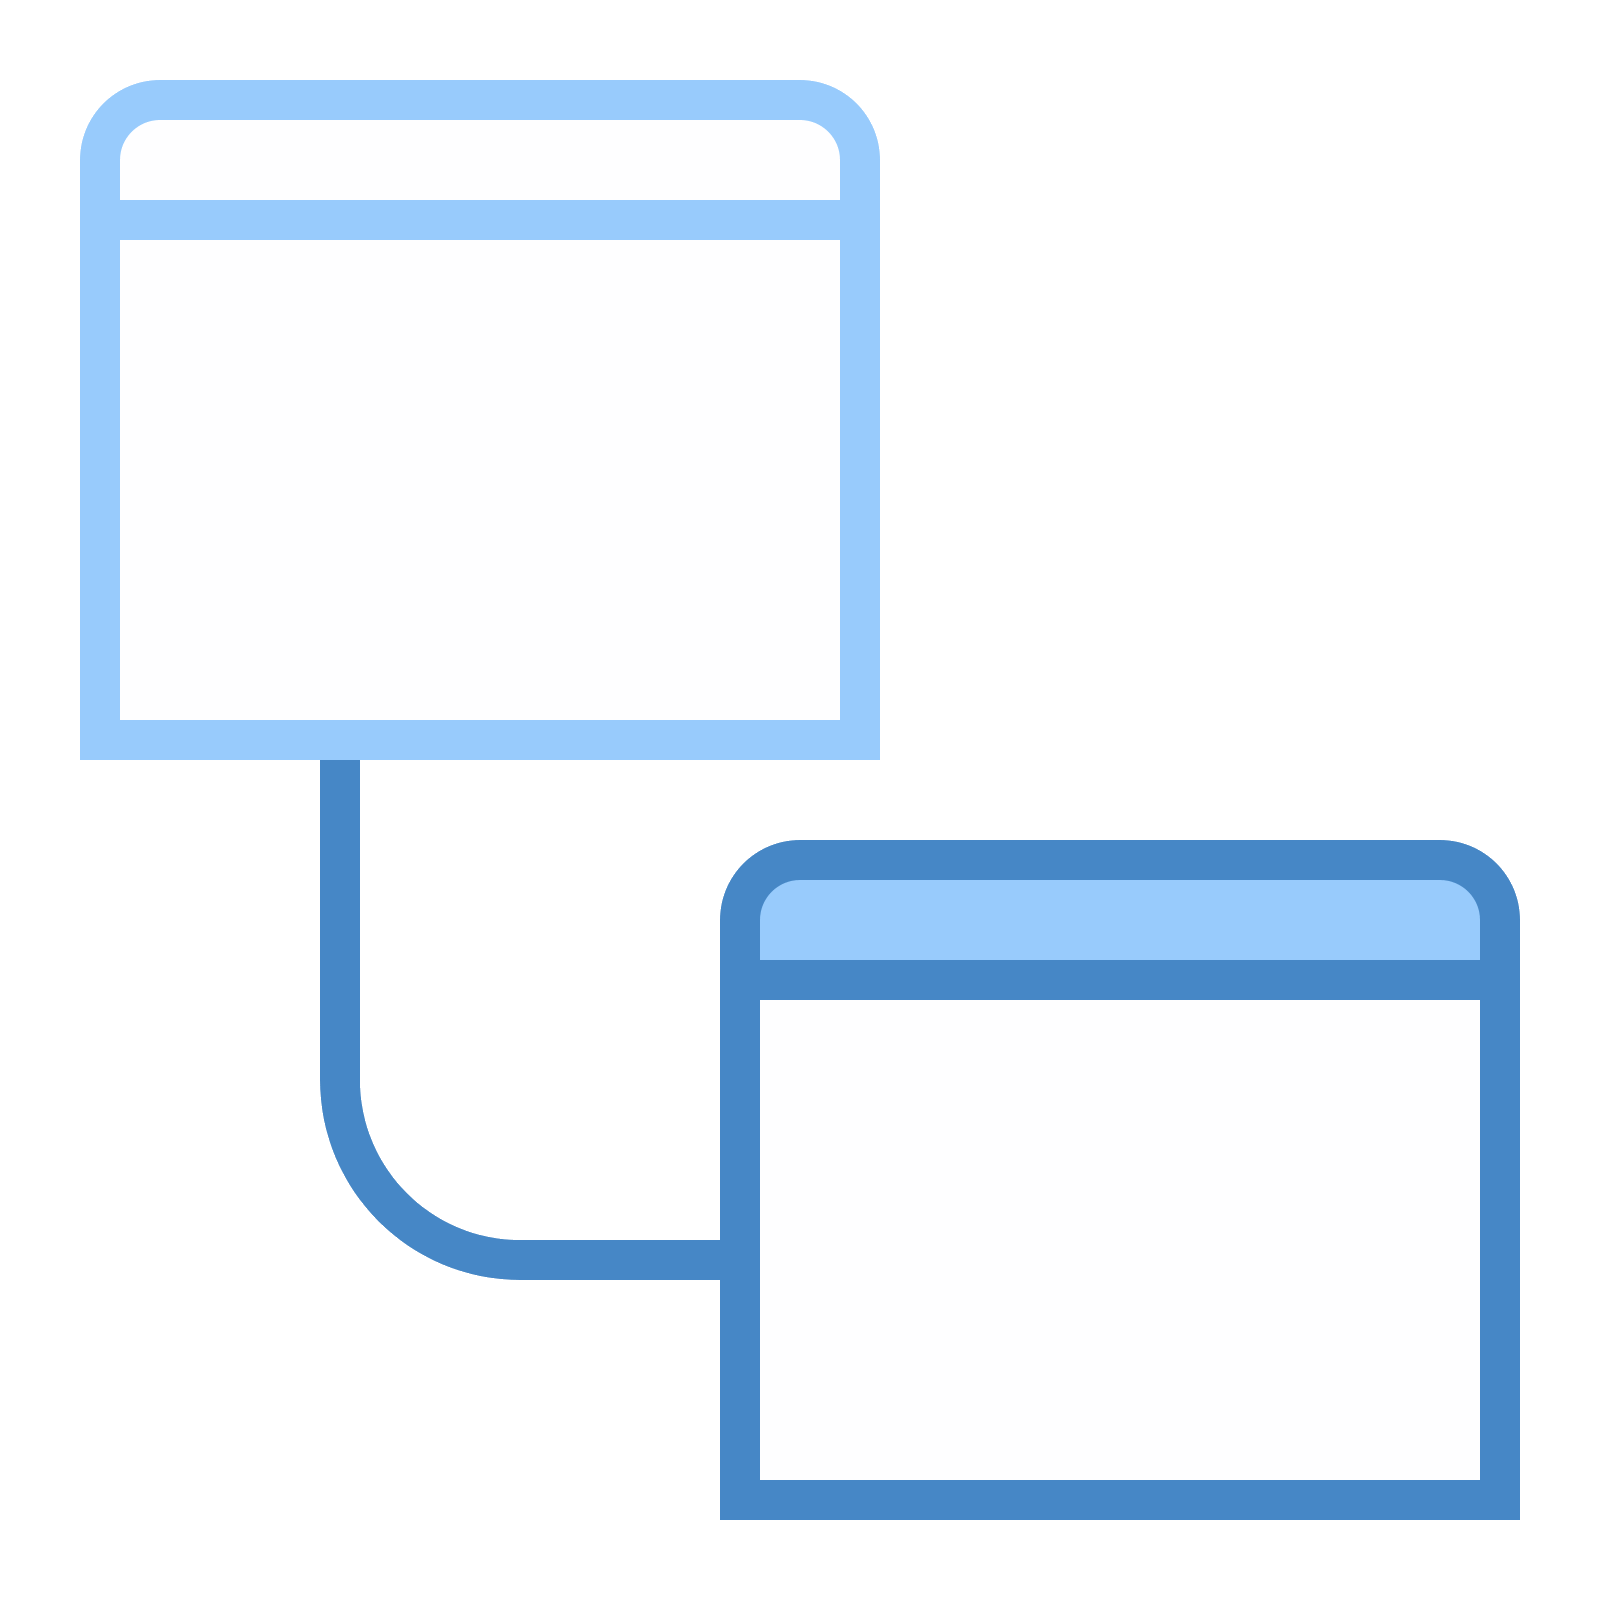 Computer static png. View level icon free